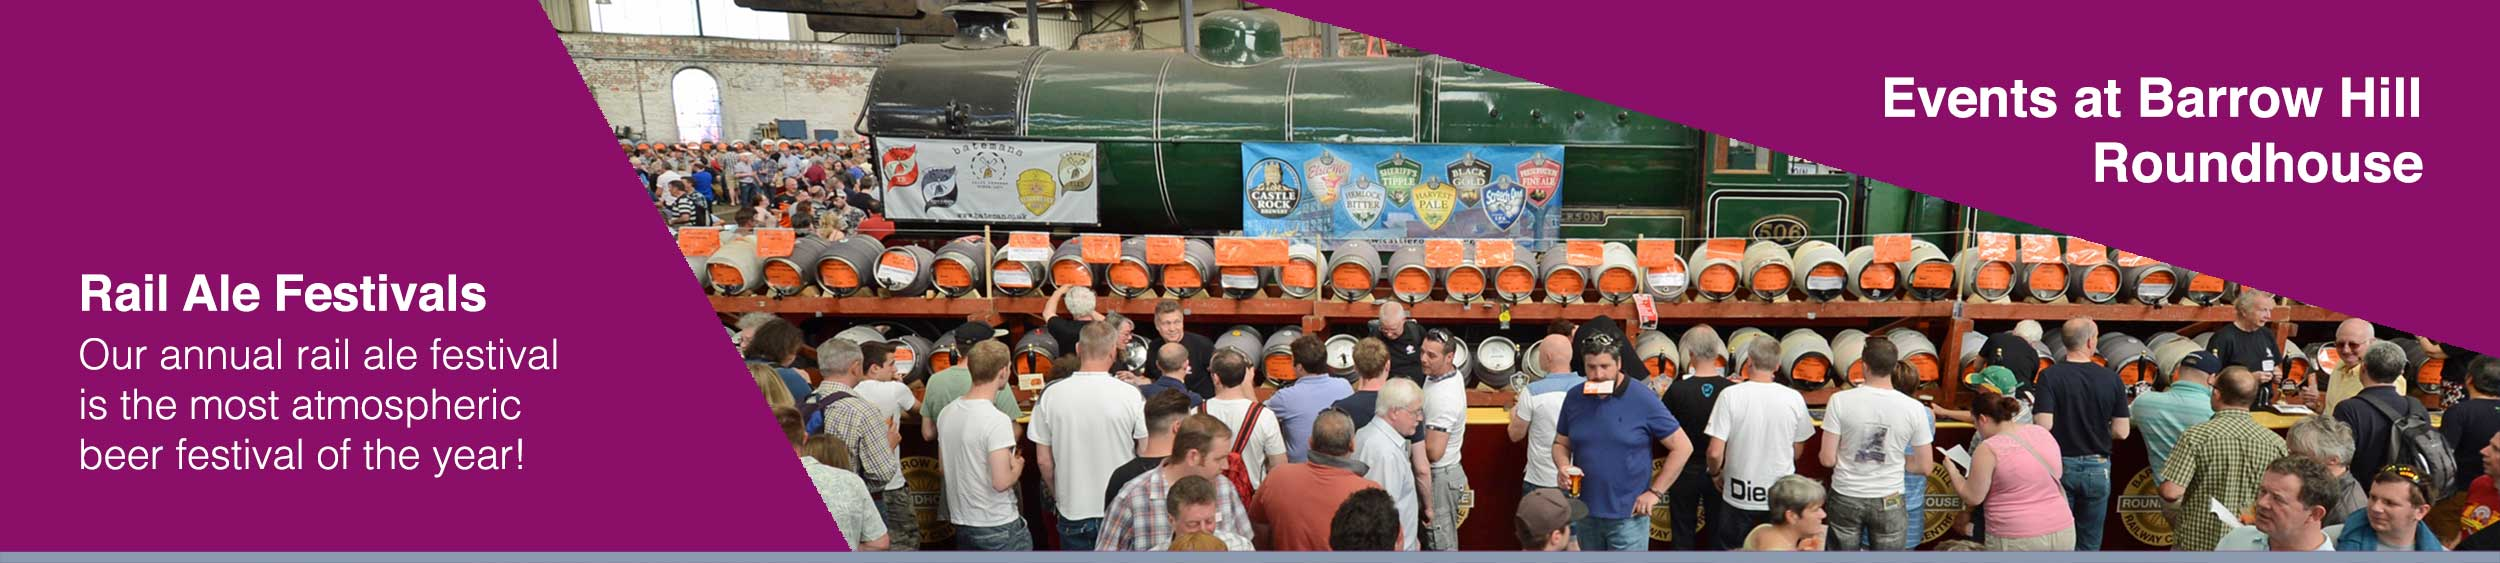 Rail Ale Festival at Barrow Hill Roundhouse, Chesterfield